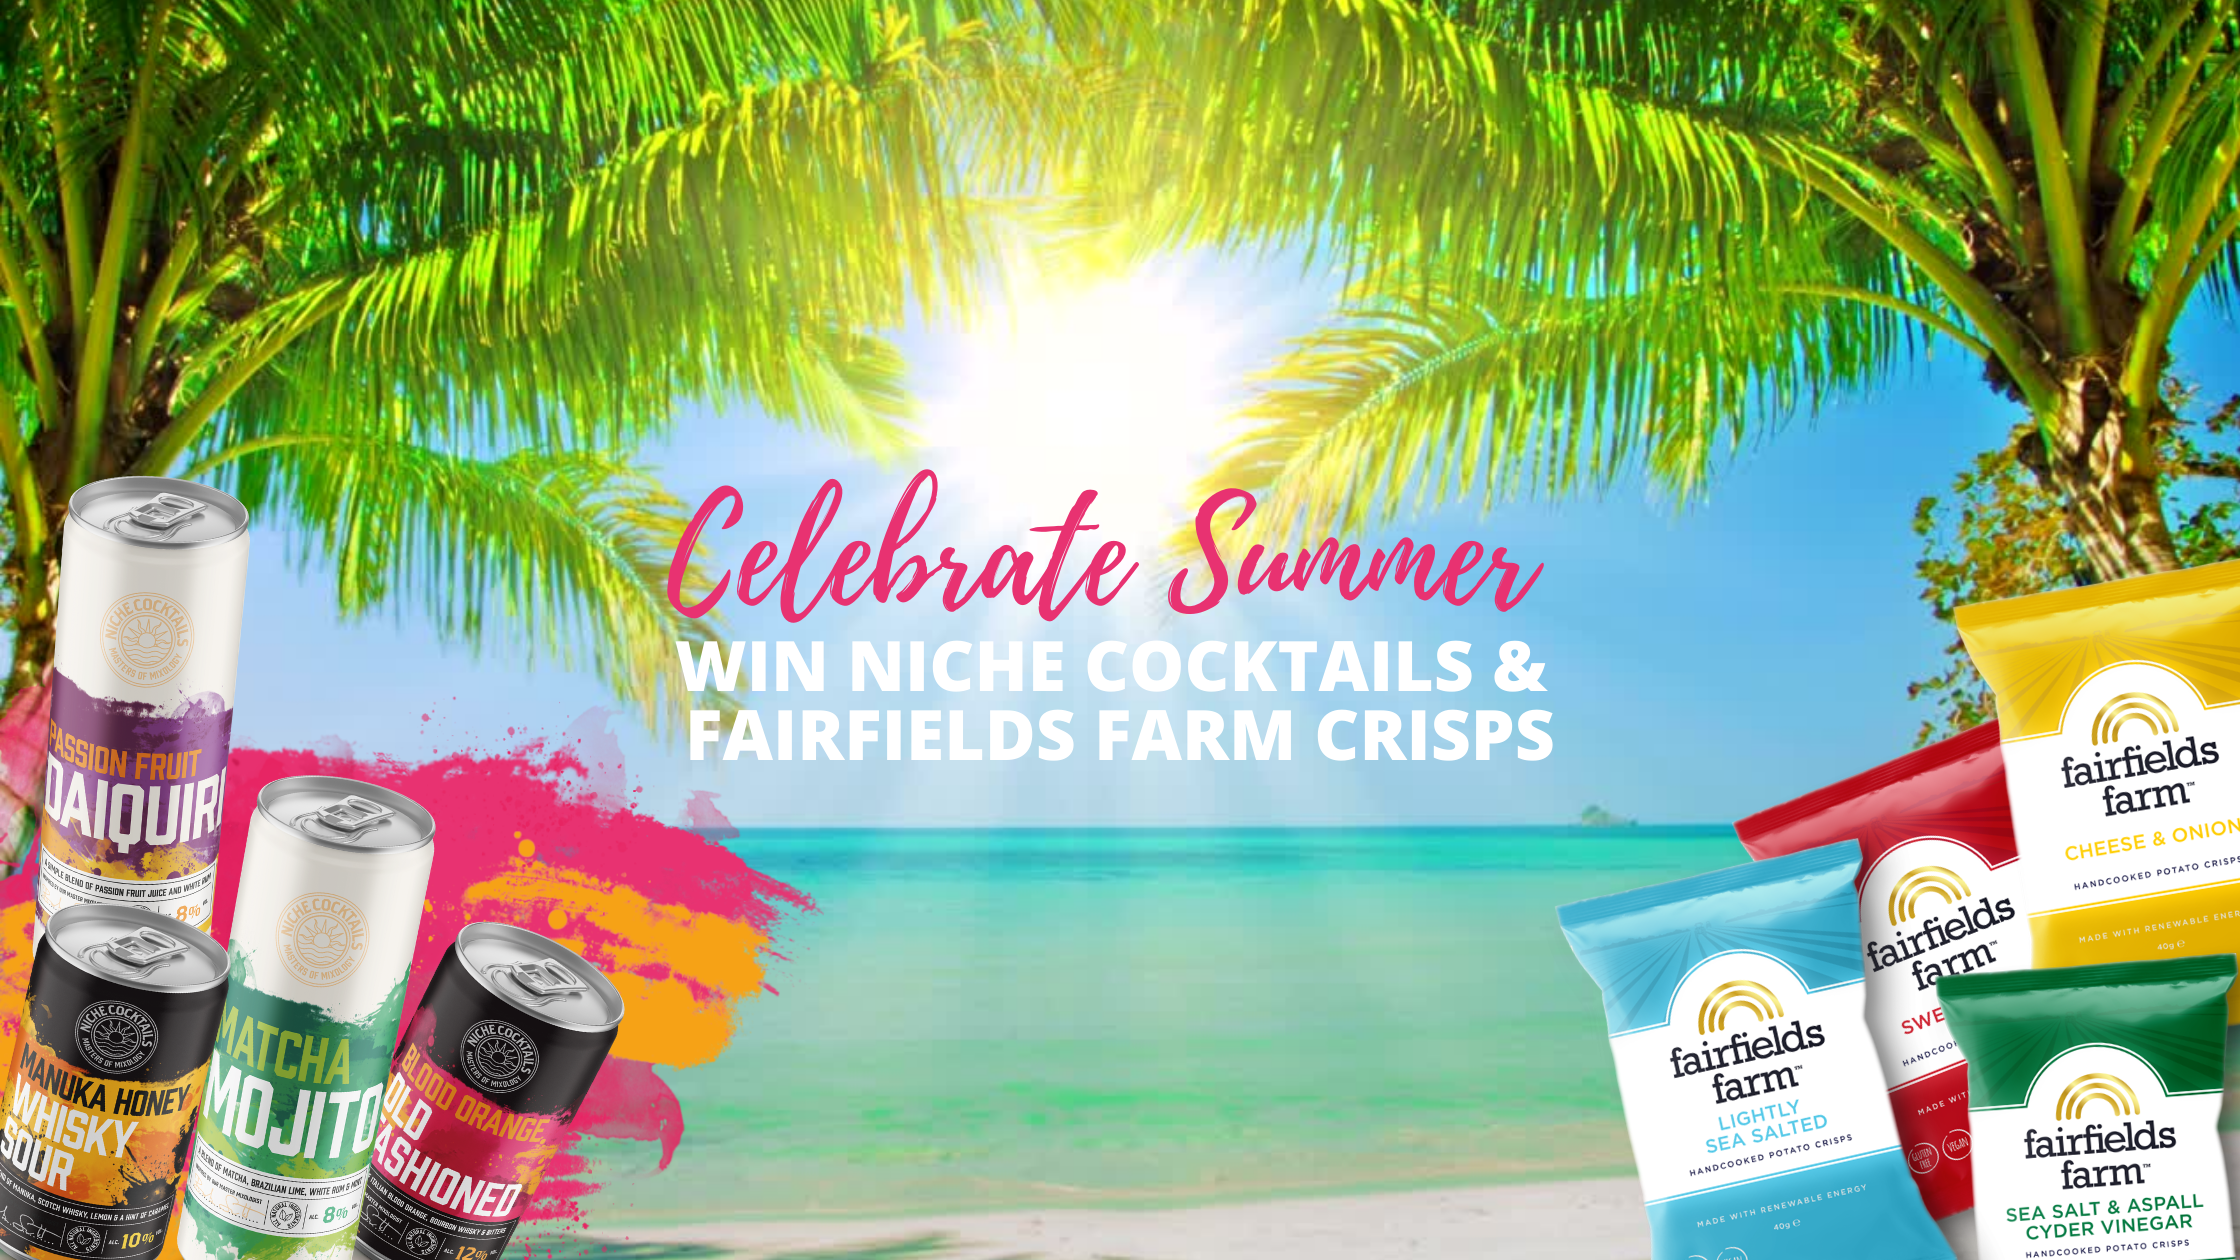 WIN Niche Cocktails & Fairfields Farm Crisps